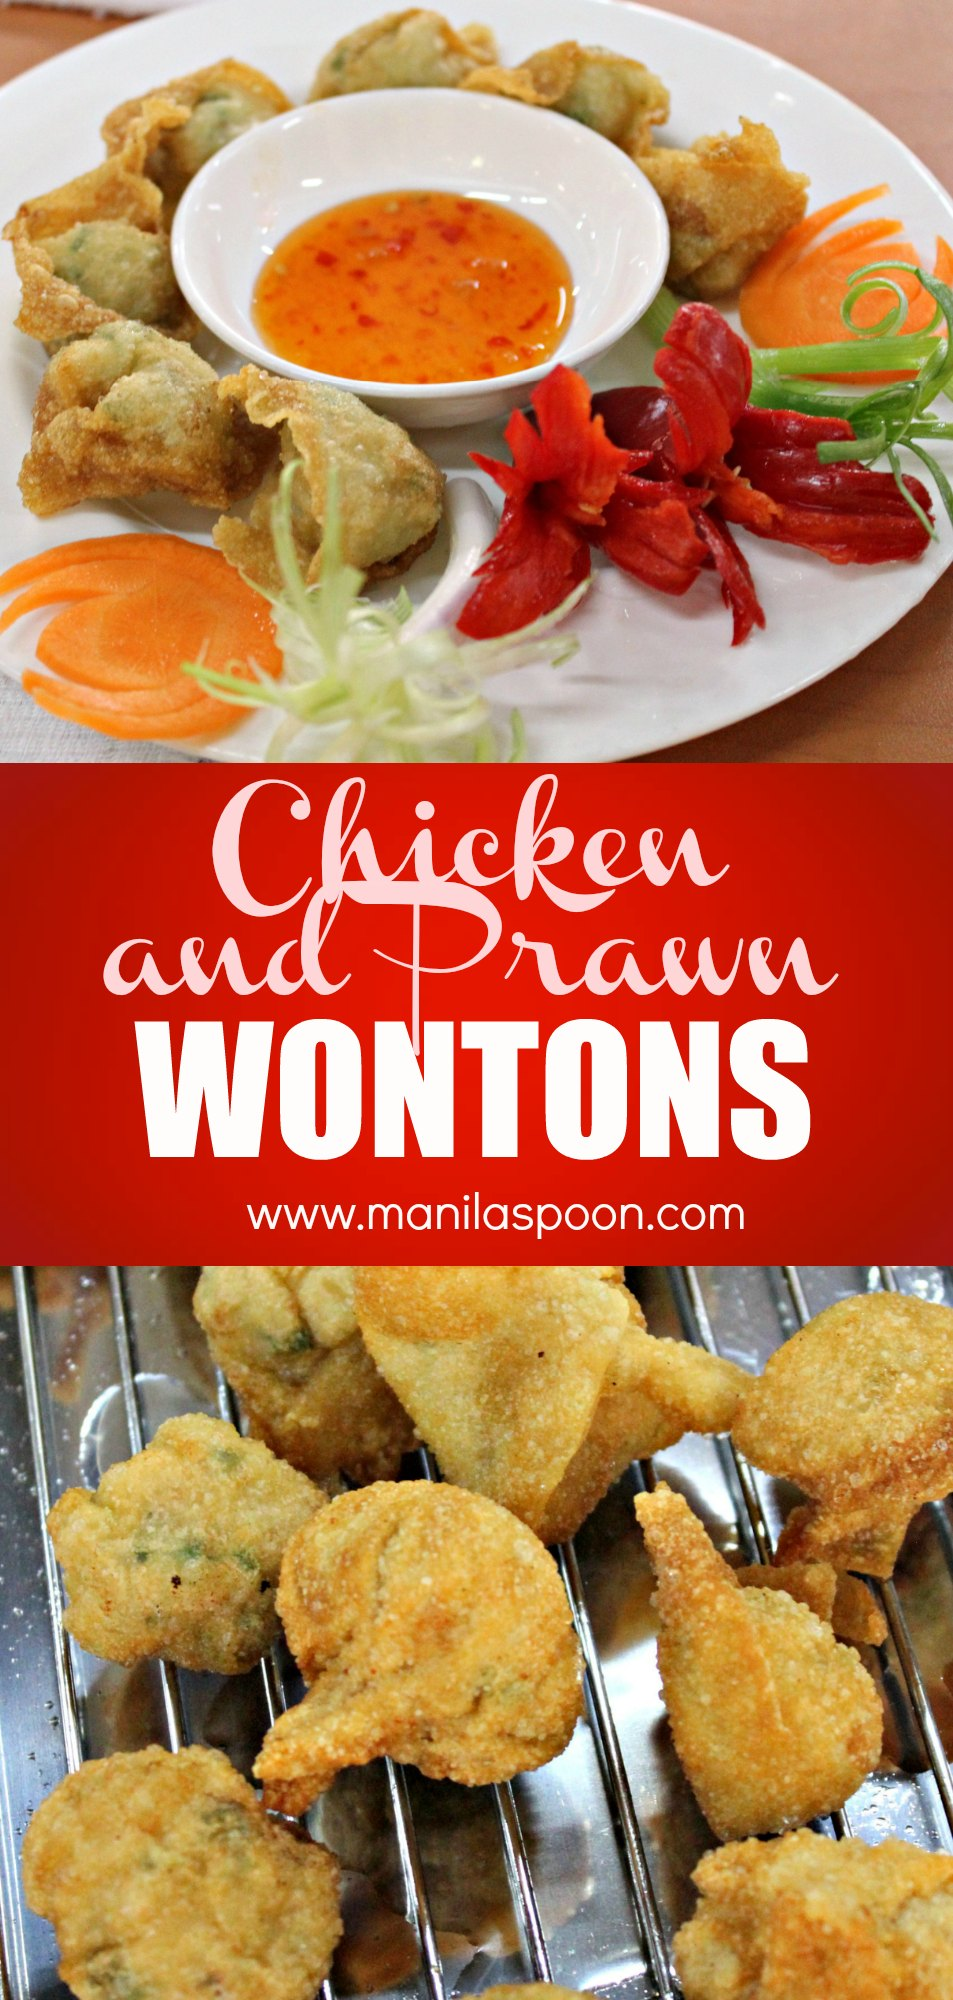 These chicken and prawn wontons are addictively delicious, you can't just have one!  Pretty easy to make, you're sure to make these many time over.